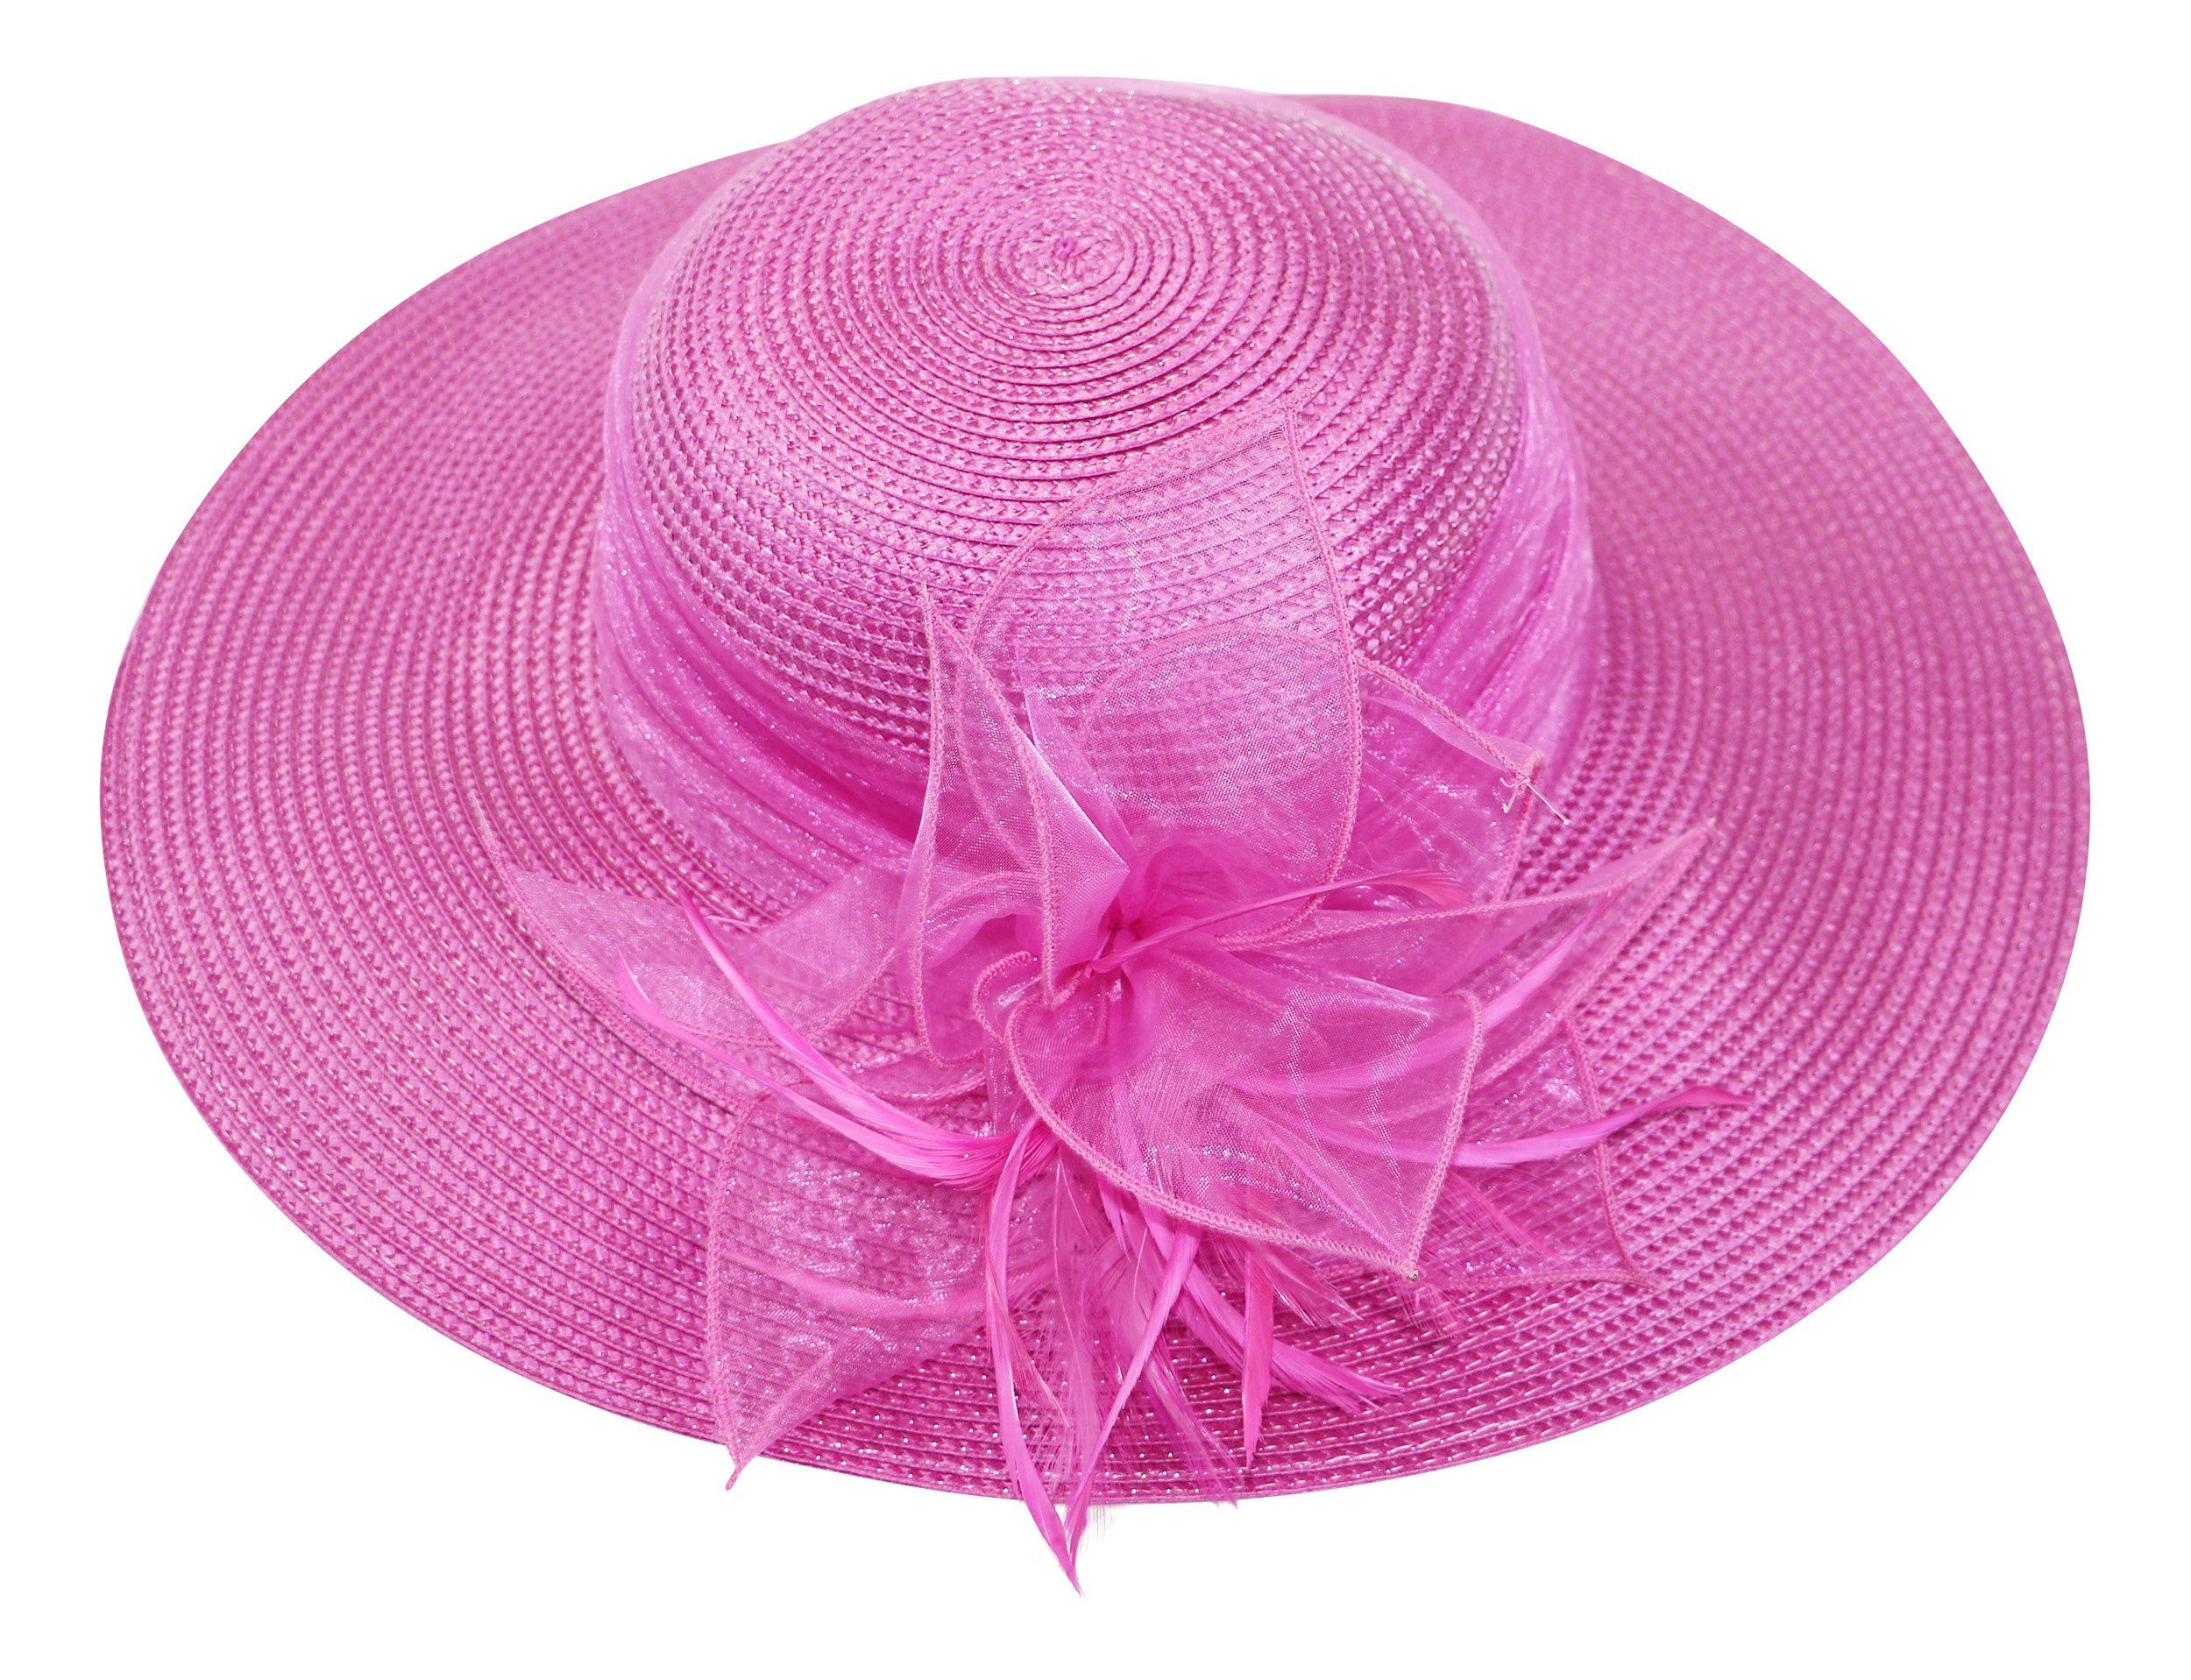 Fine Millinery by August Hat Co Feather Accented Downbrim (Fuchsia, One Size)